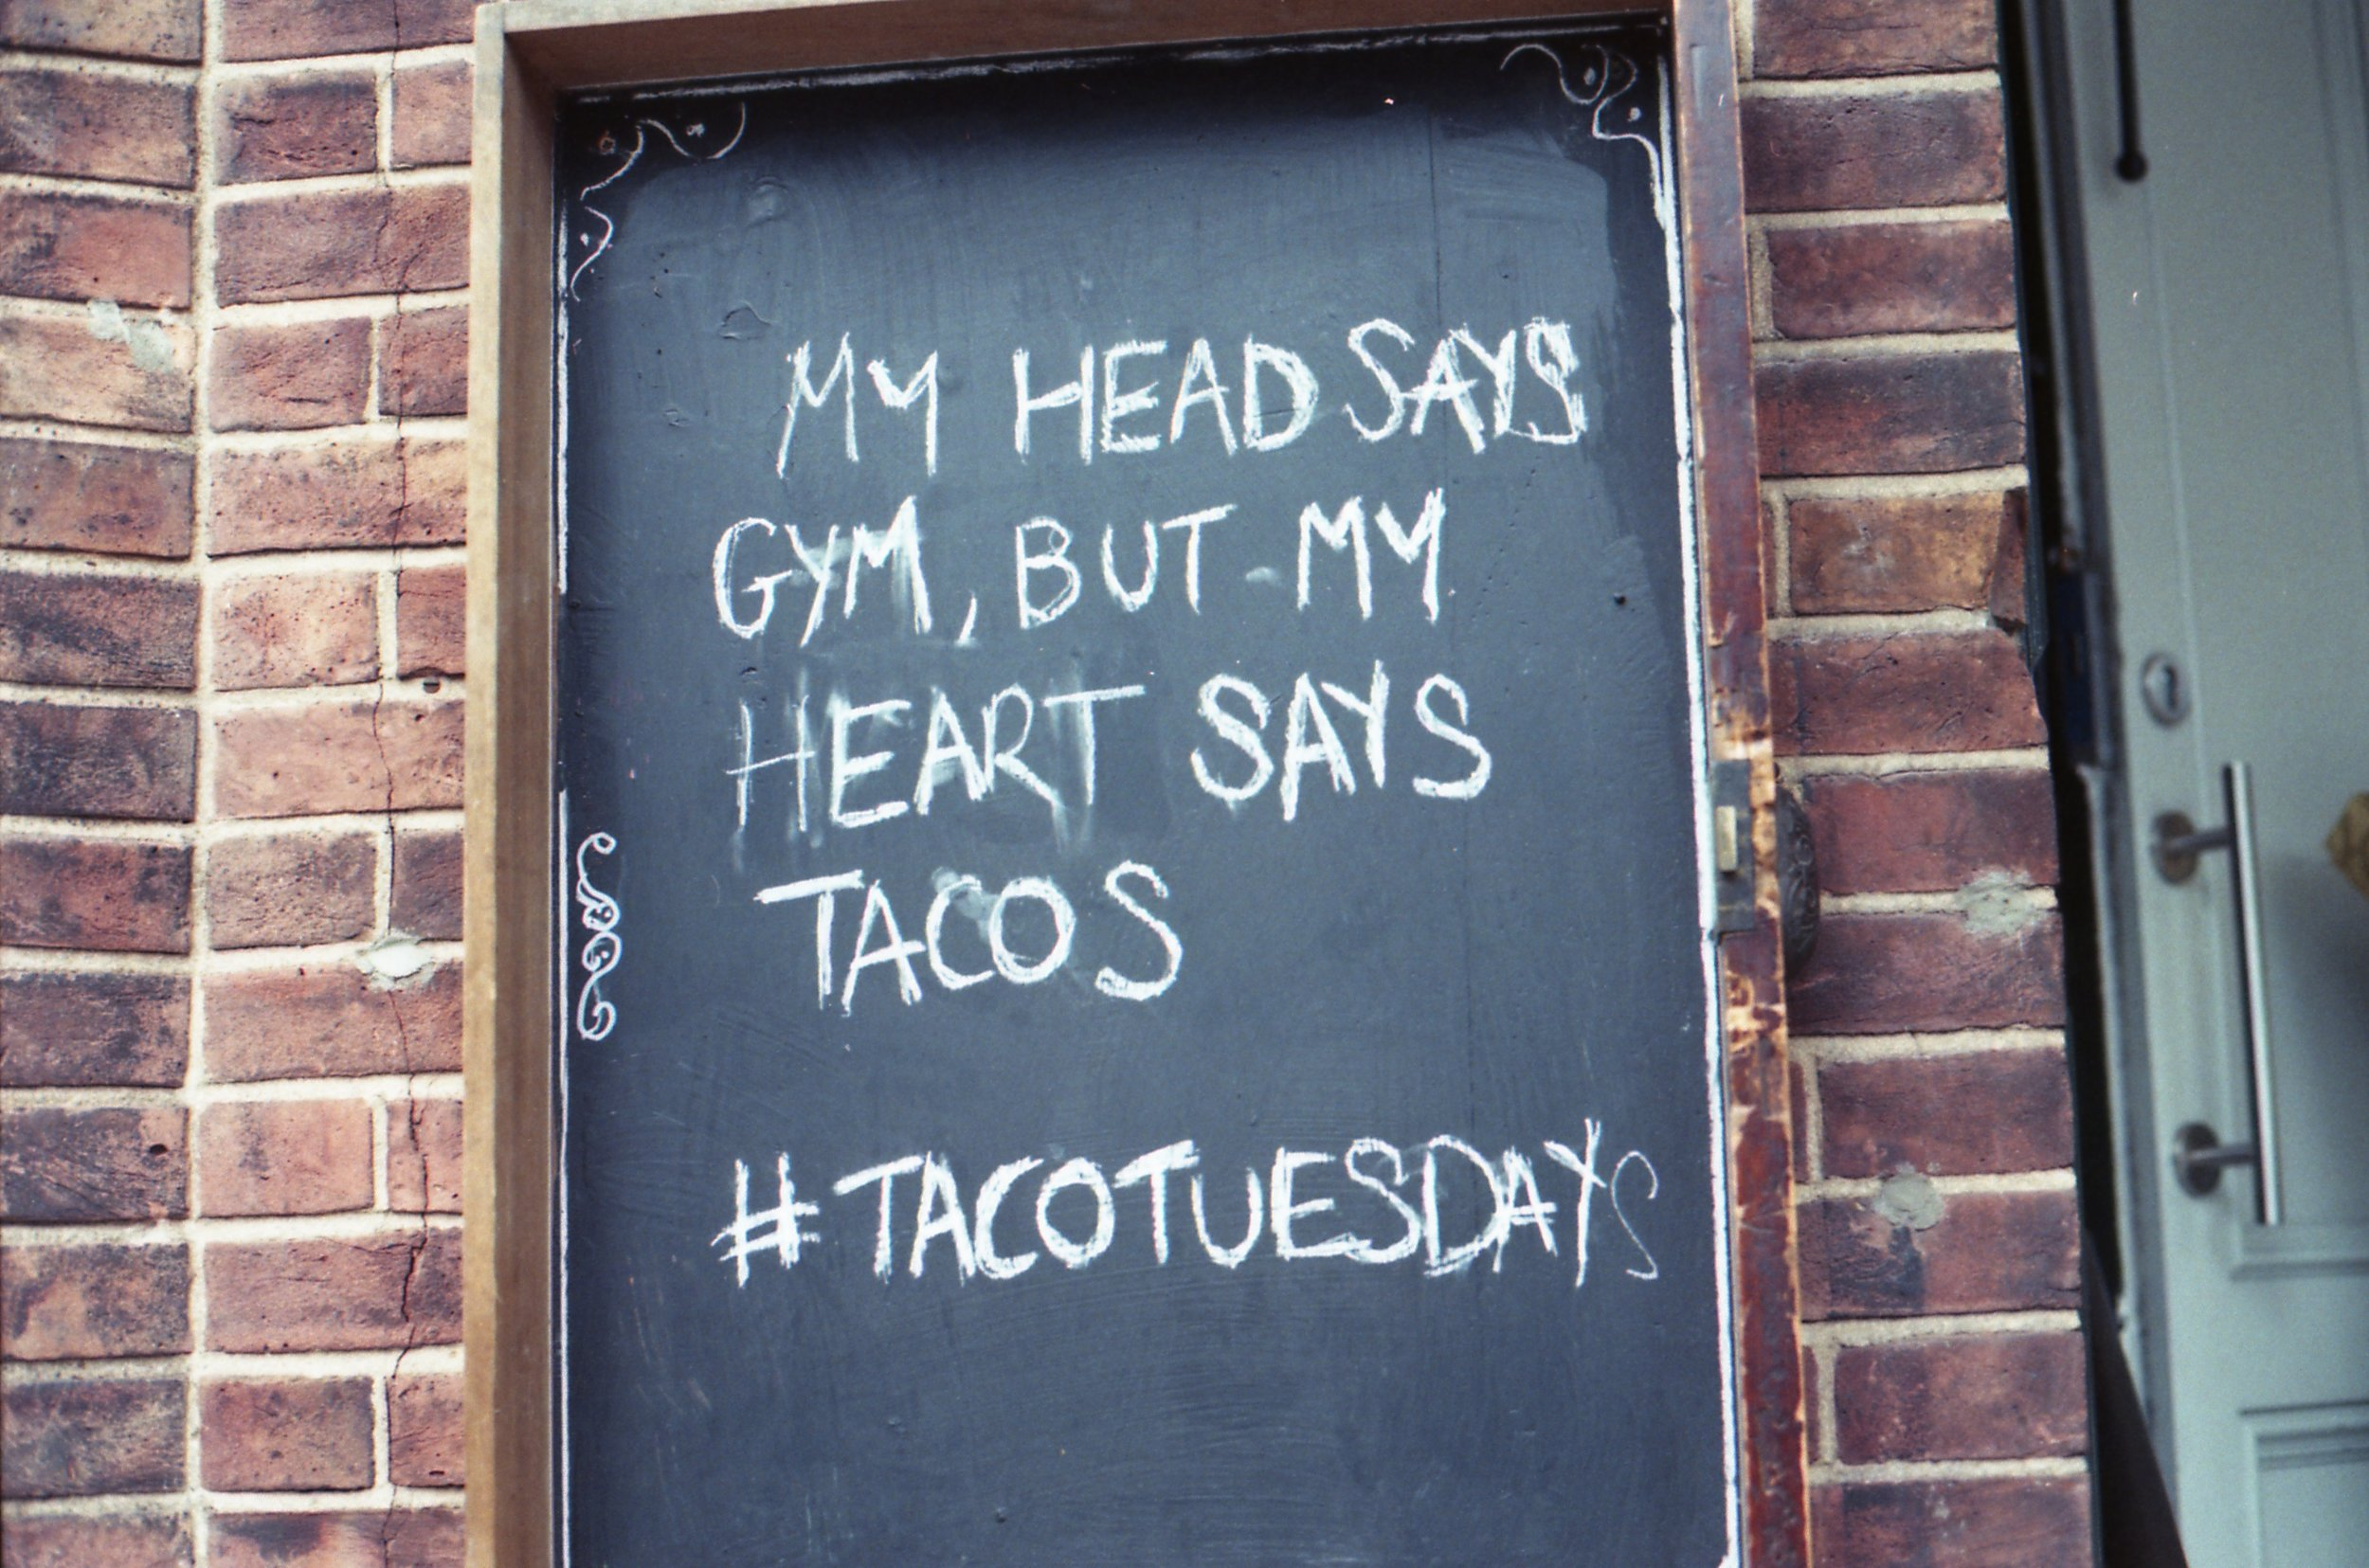 216/366 -I mostly took this photo because it was actually Wednesday and that made me chuckle for some reason. Everyday is taco Tuesday though right?!